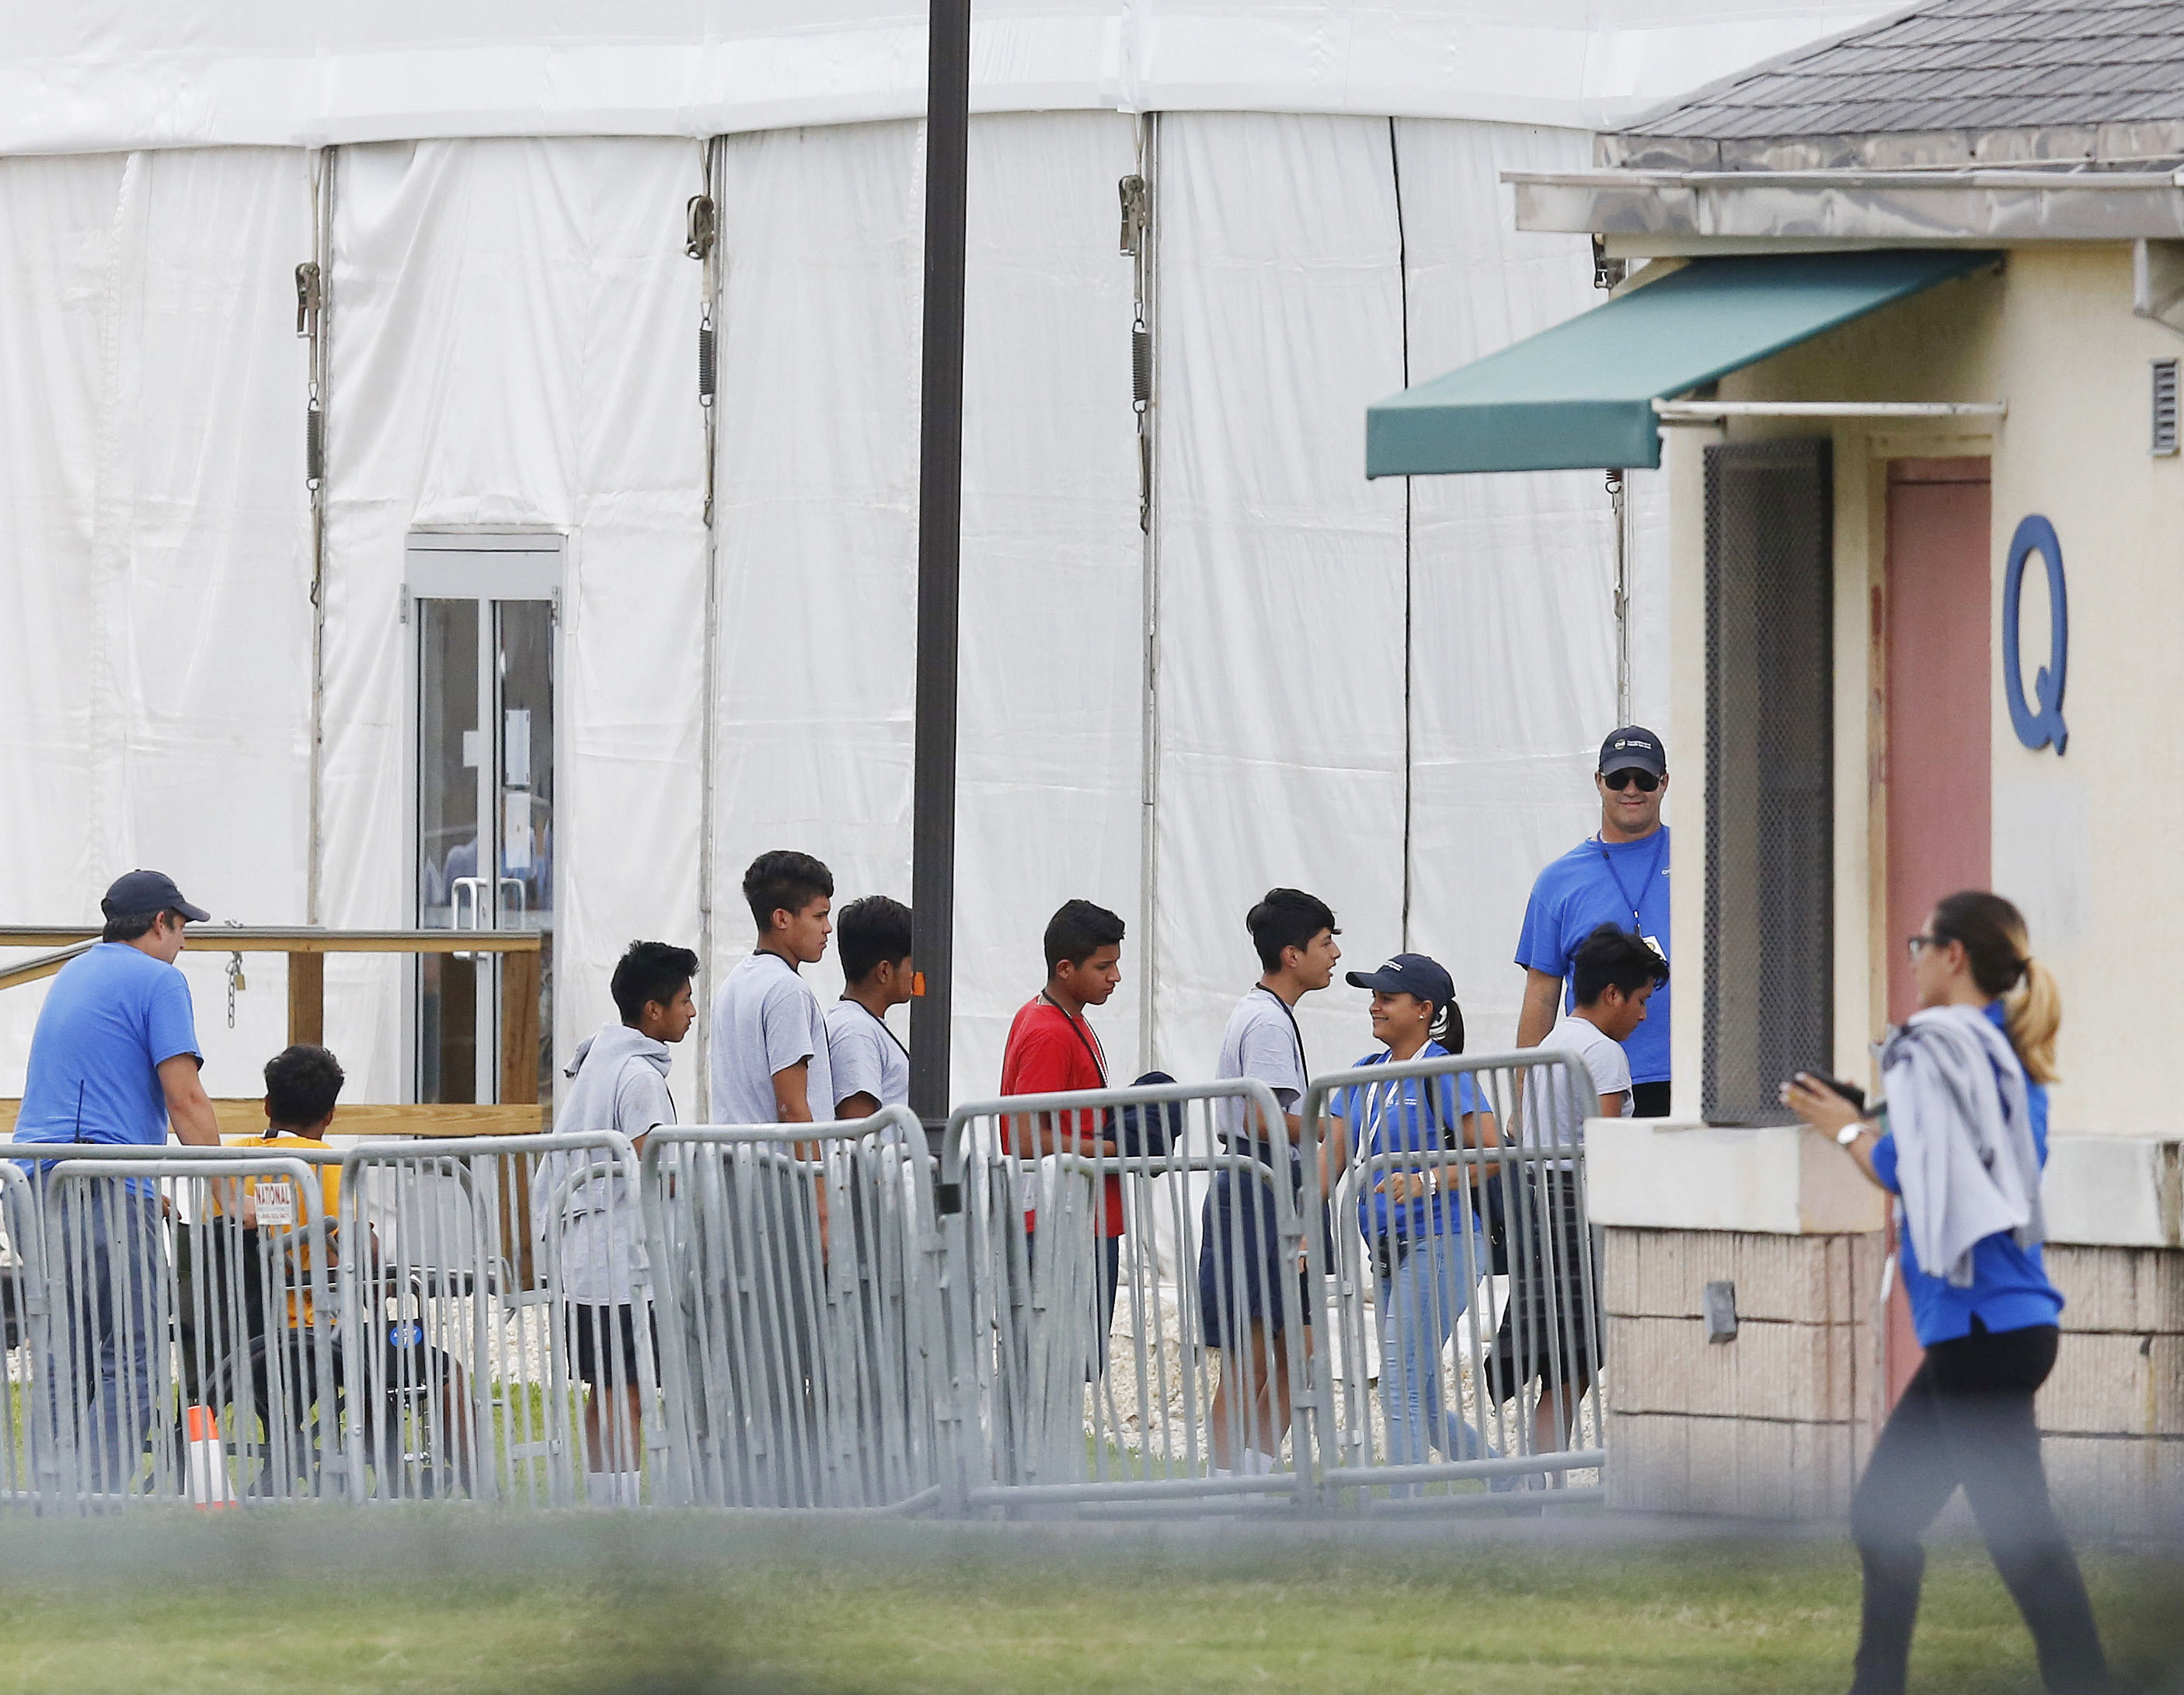 DC site eyed for temporary shelter to house unaccompanied migrant children